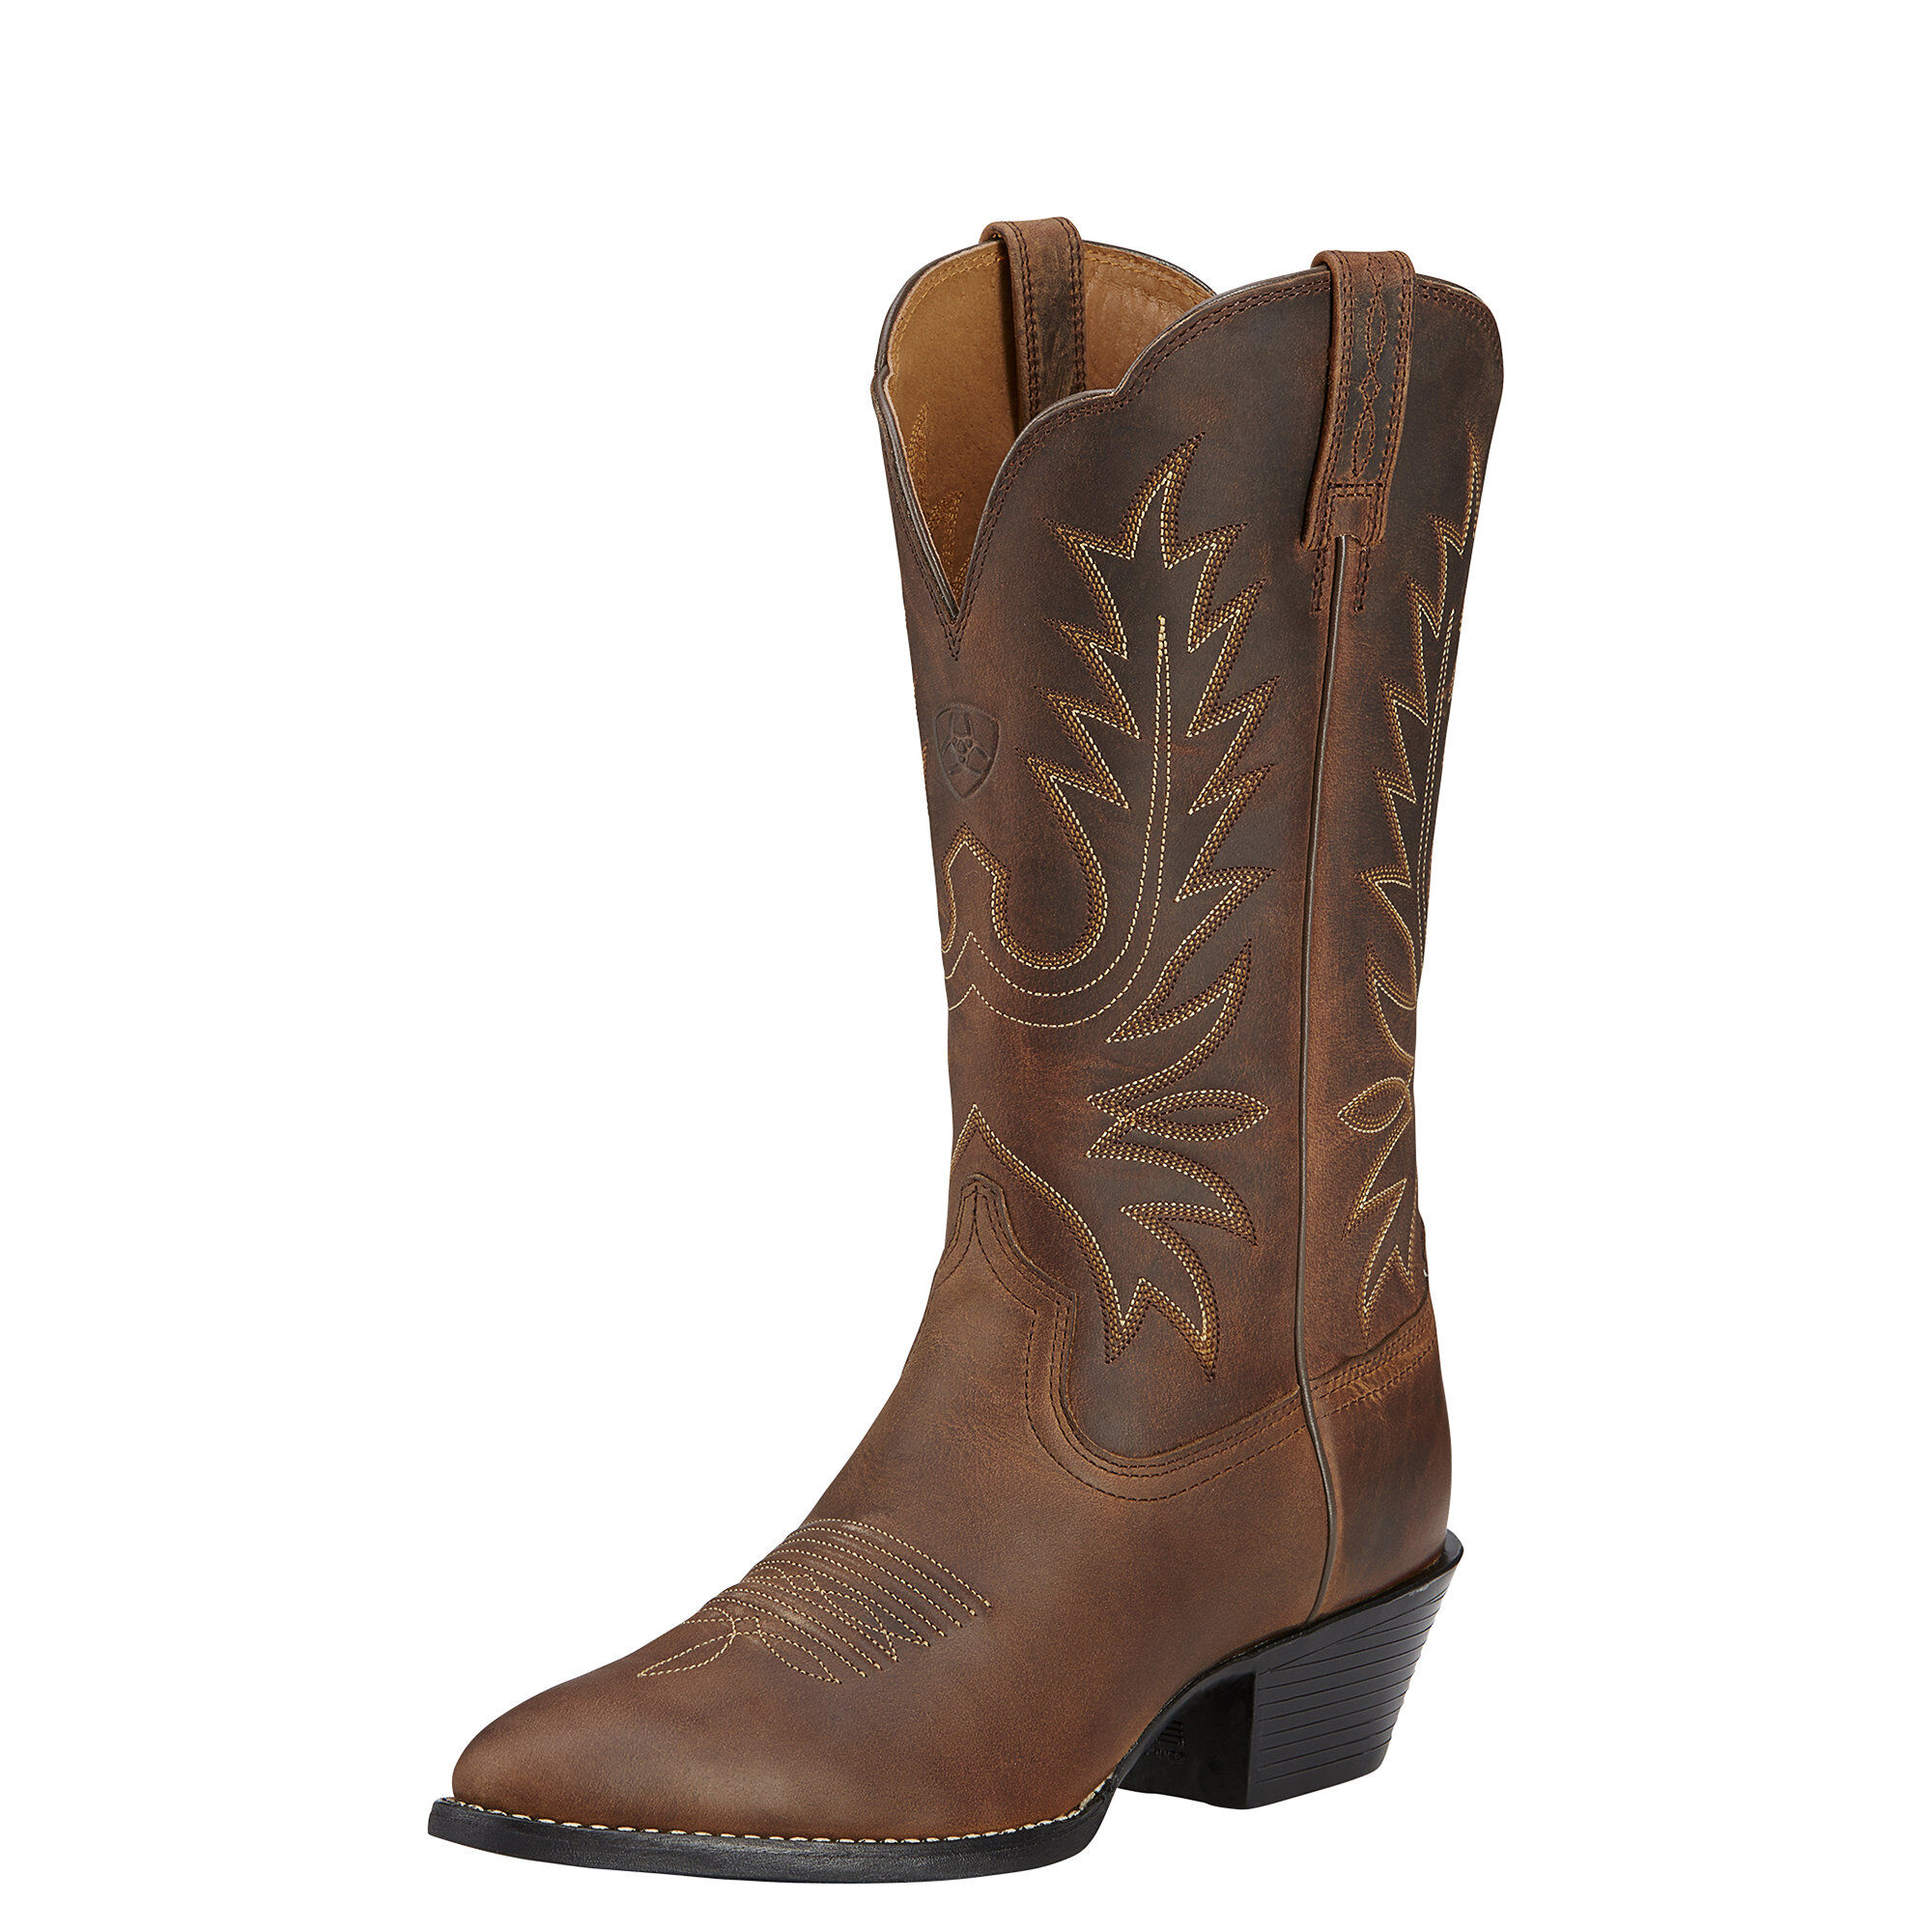 Wide Calf Cowgirl Boots - Women's Wide